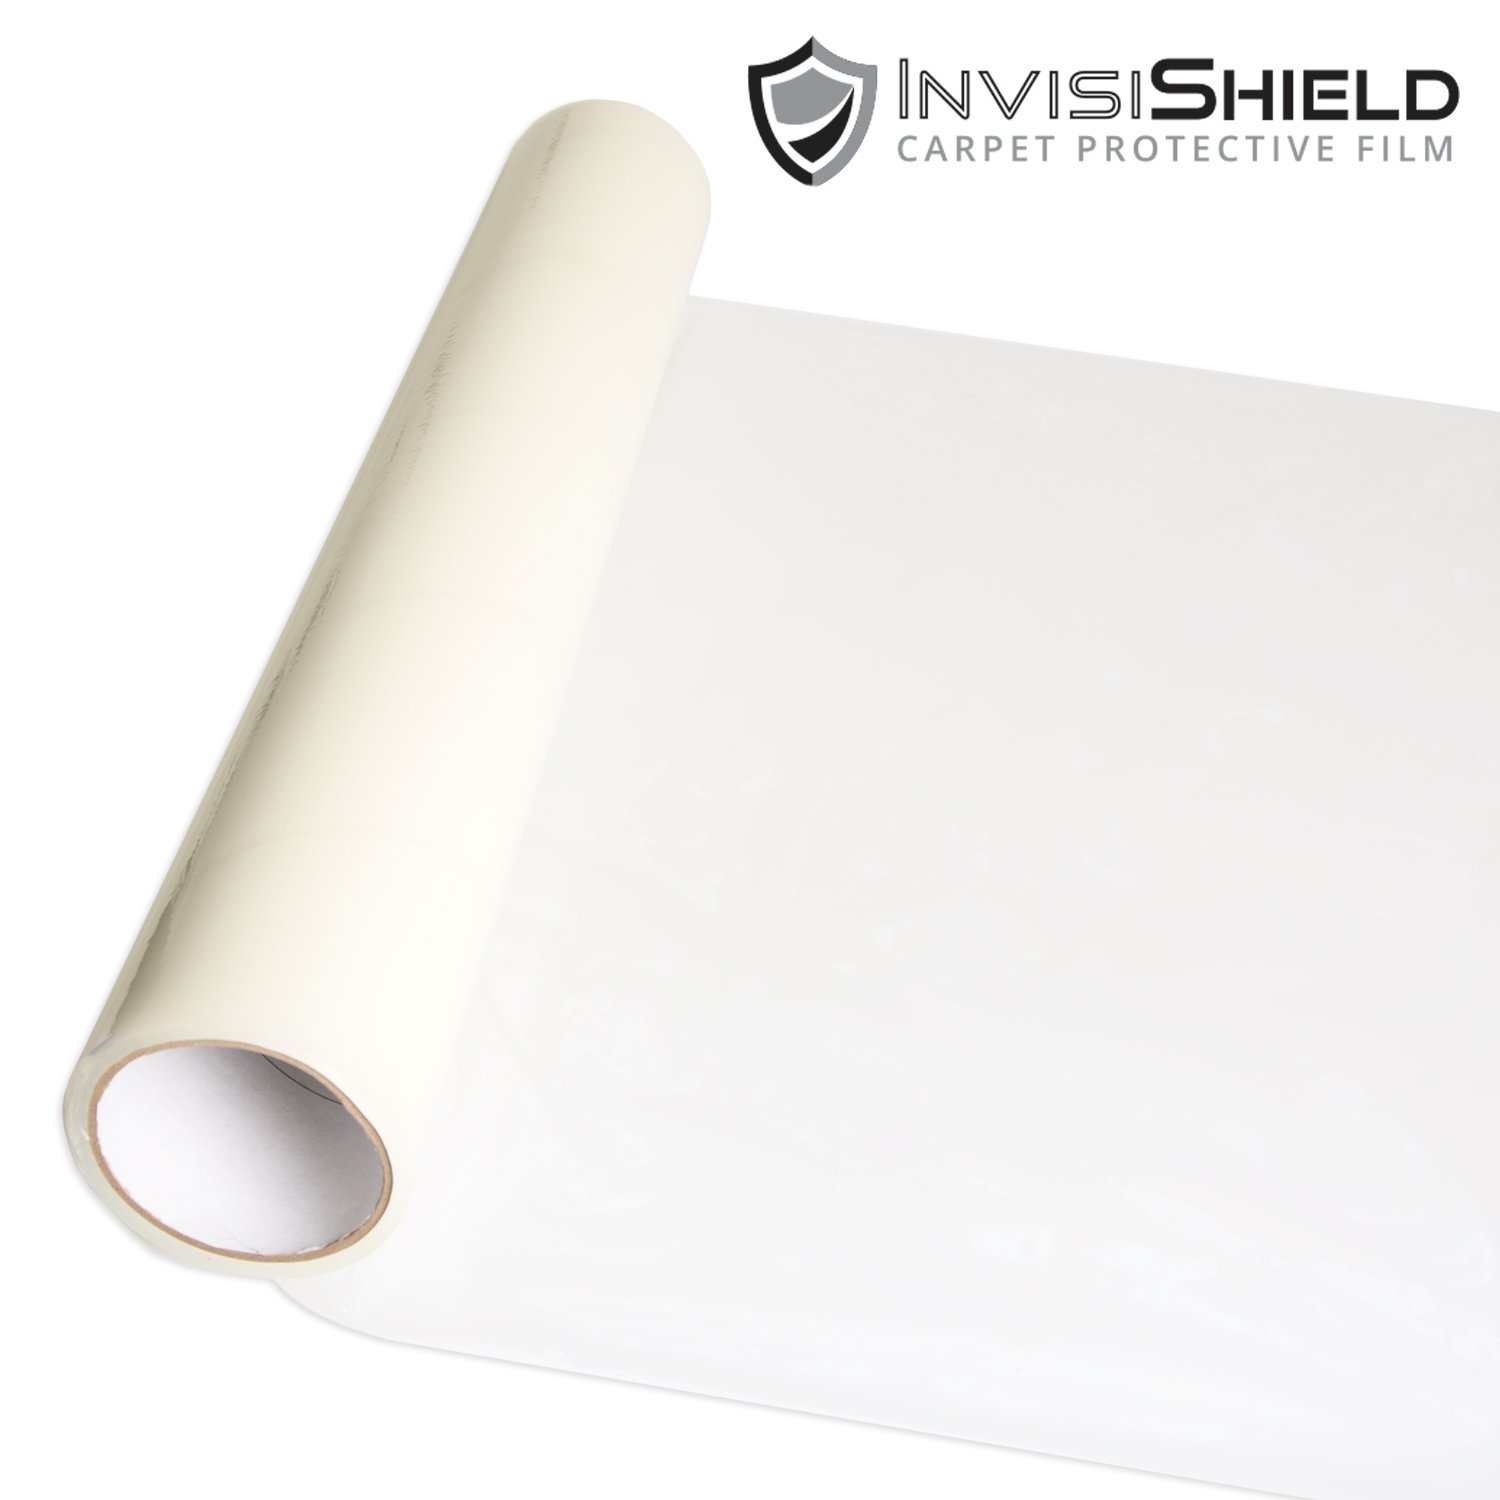 InvisiShield Carpet Protector Film - 24 inch x 200 Foot Adhesive Plastic Floor Protection Film by Iron Forge Tools